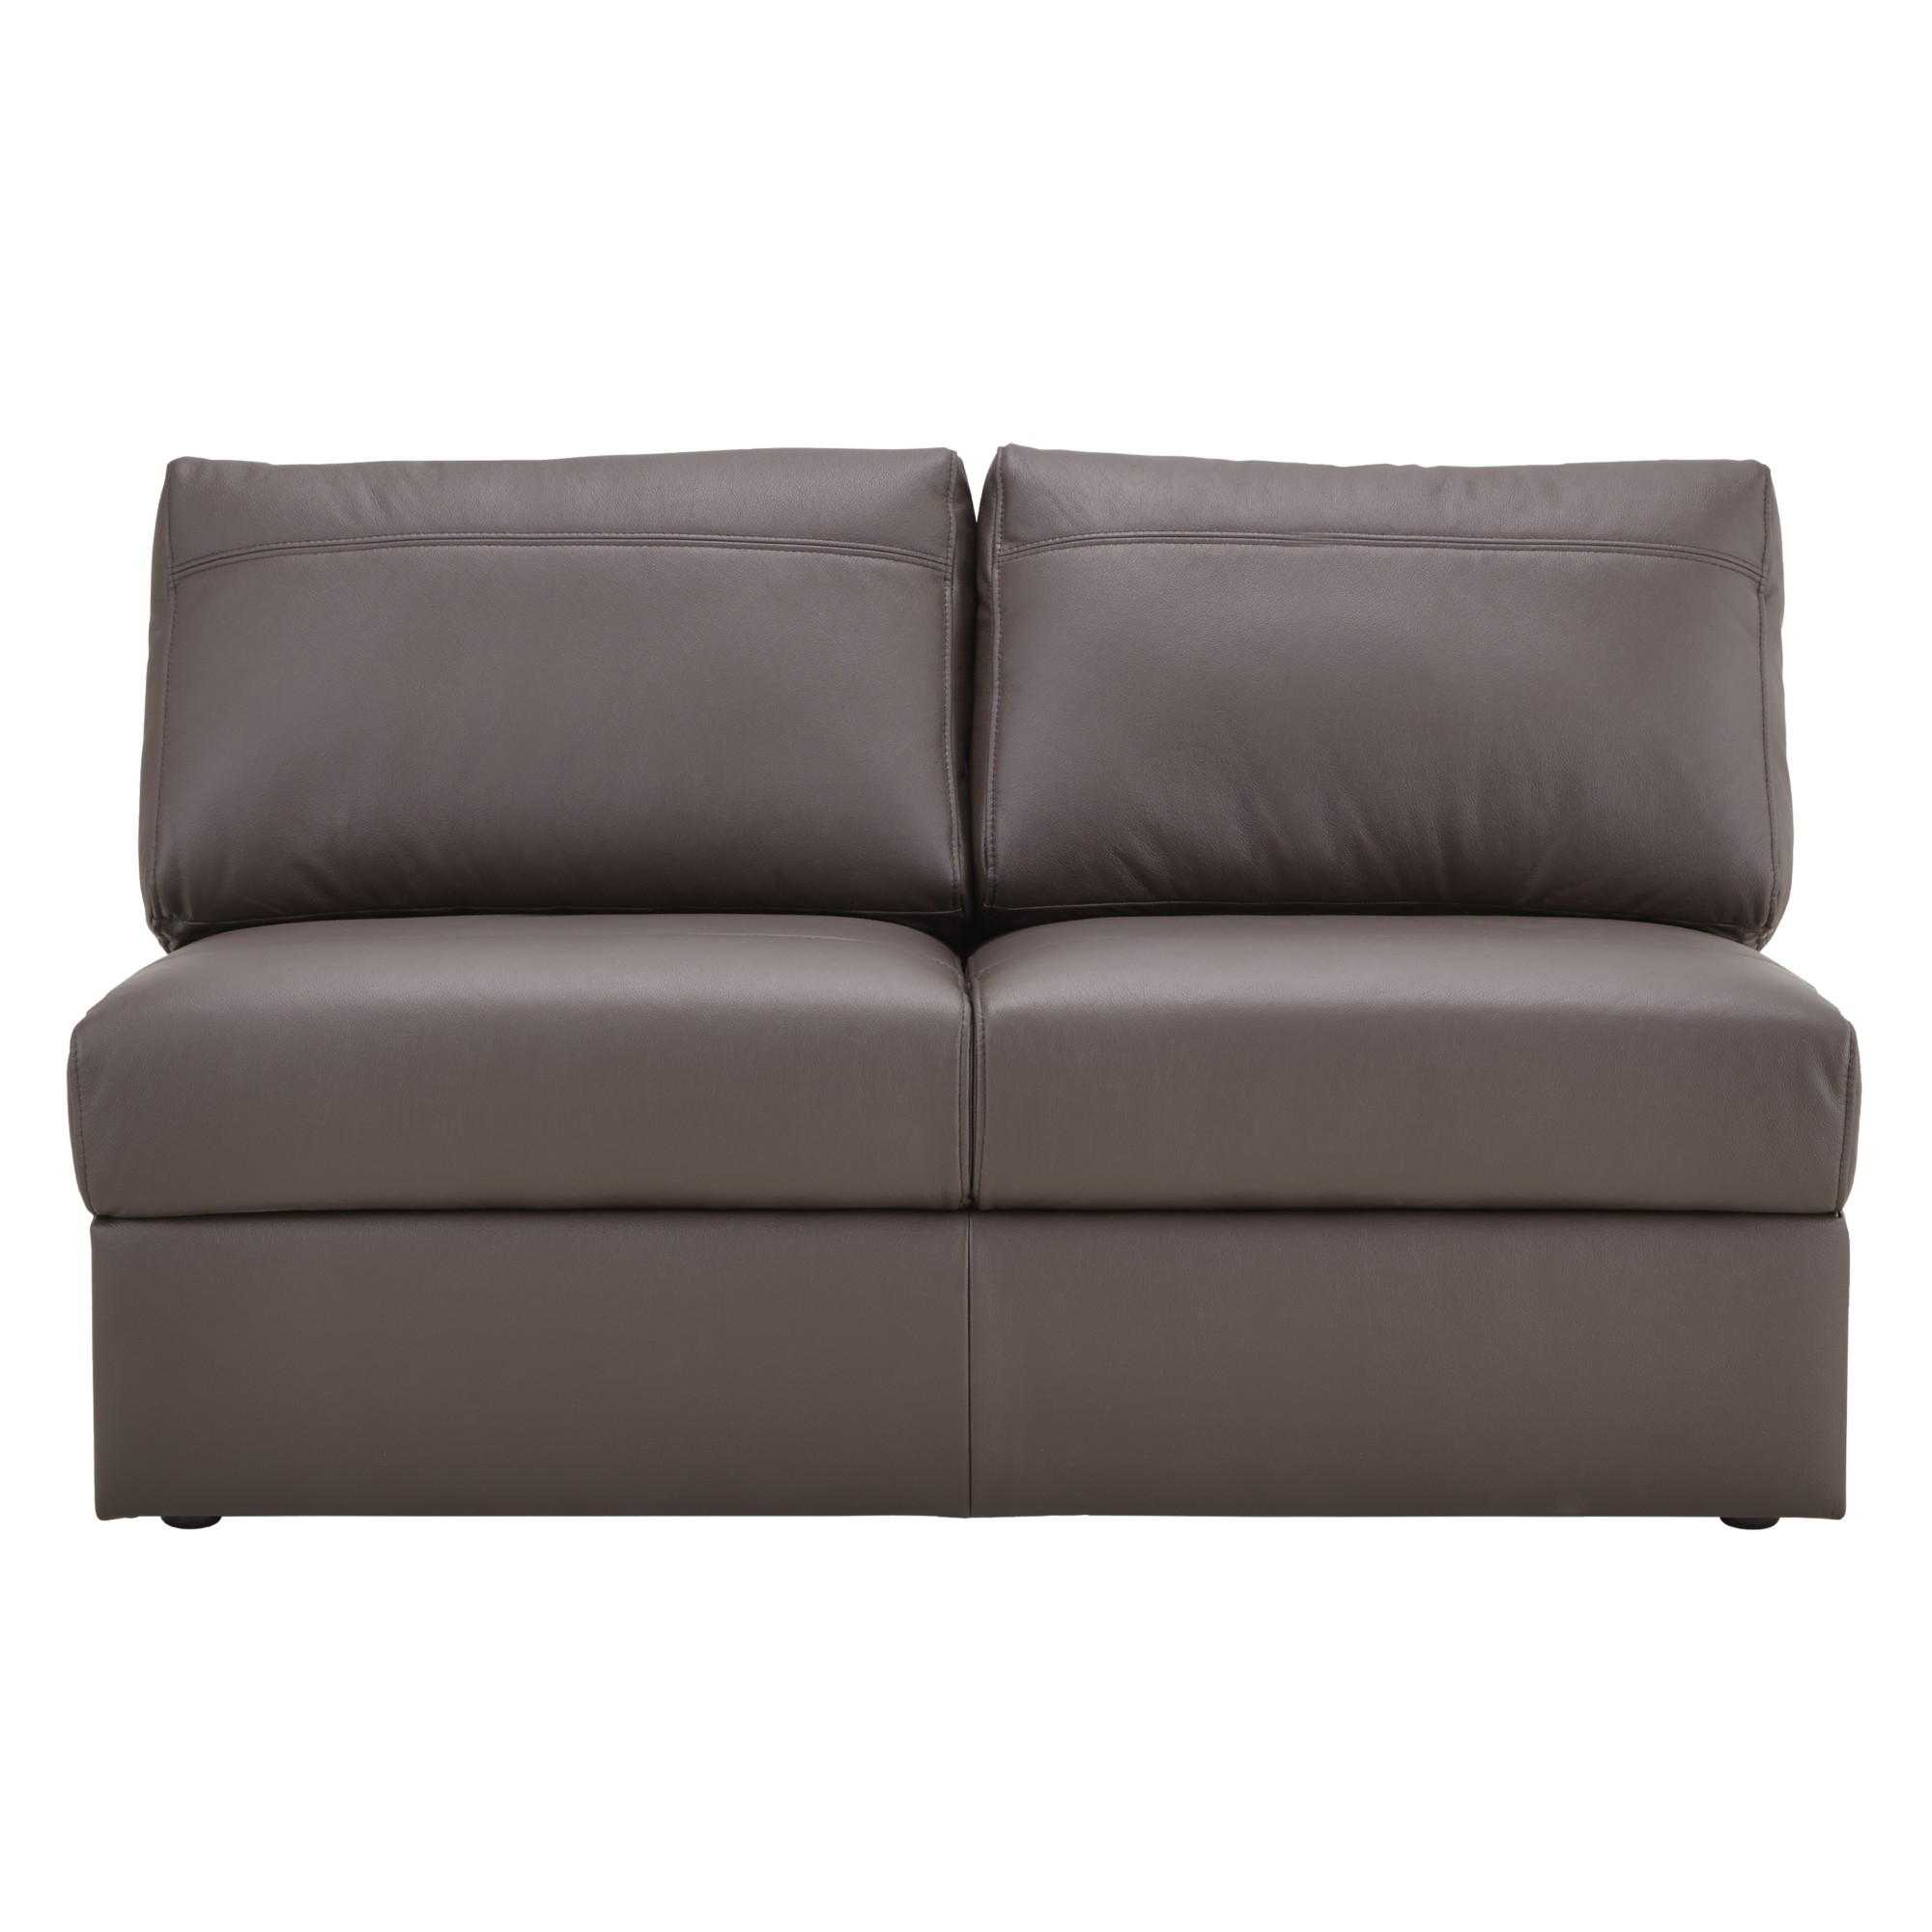 Armless Leather Sofa New Standard Armless Leather Sofa Hivemodern